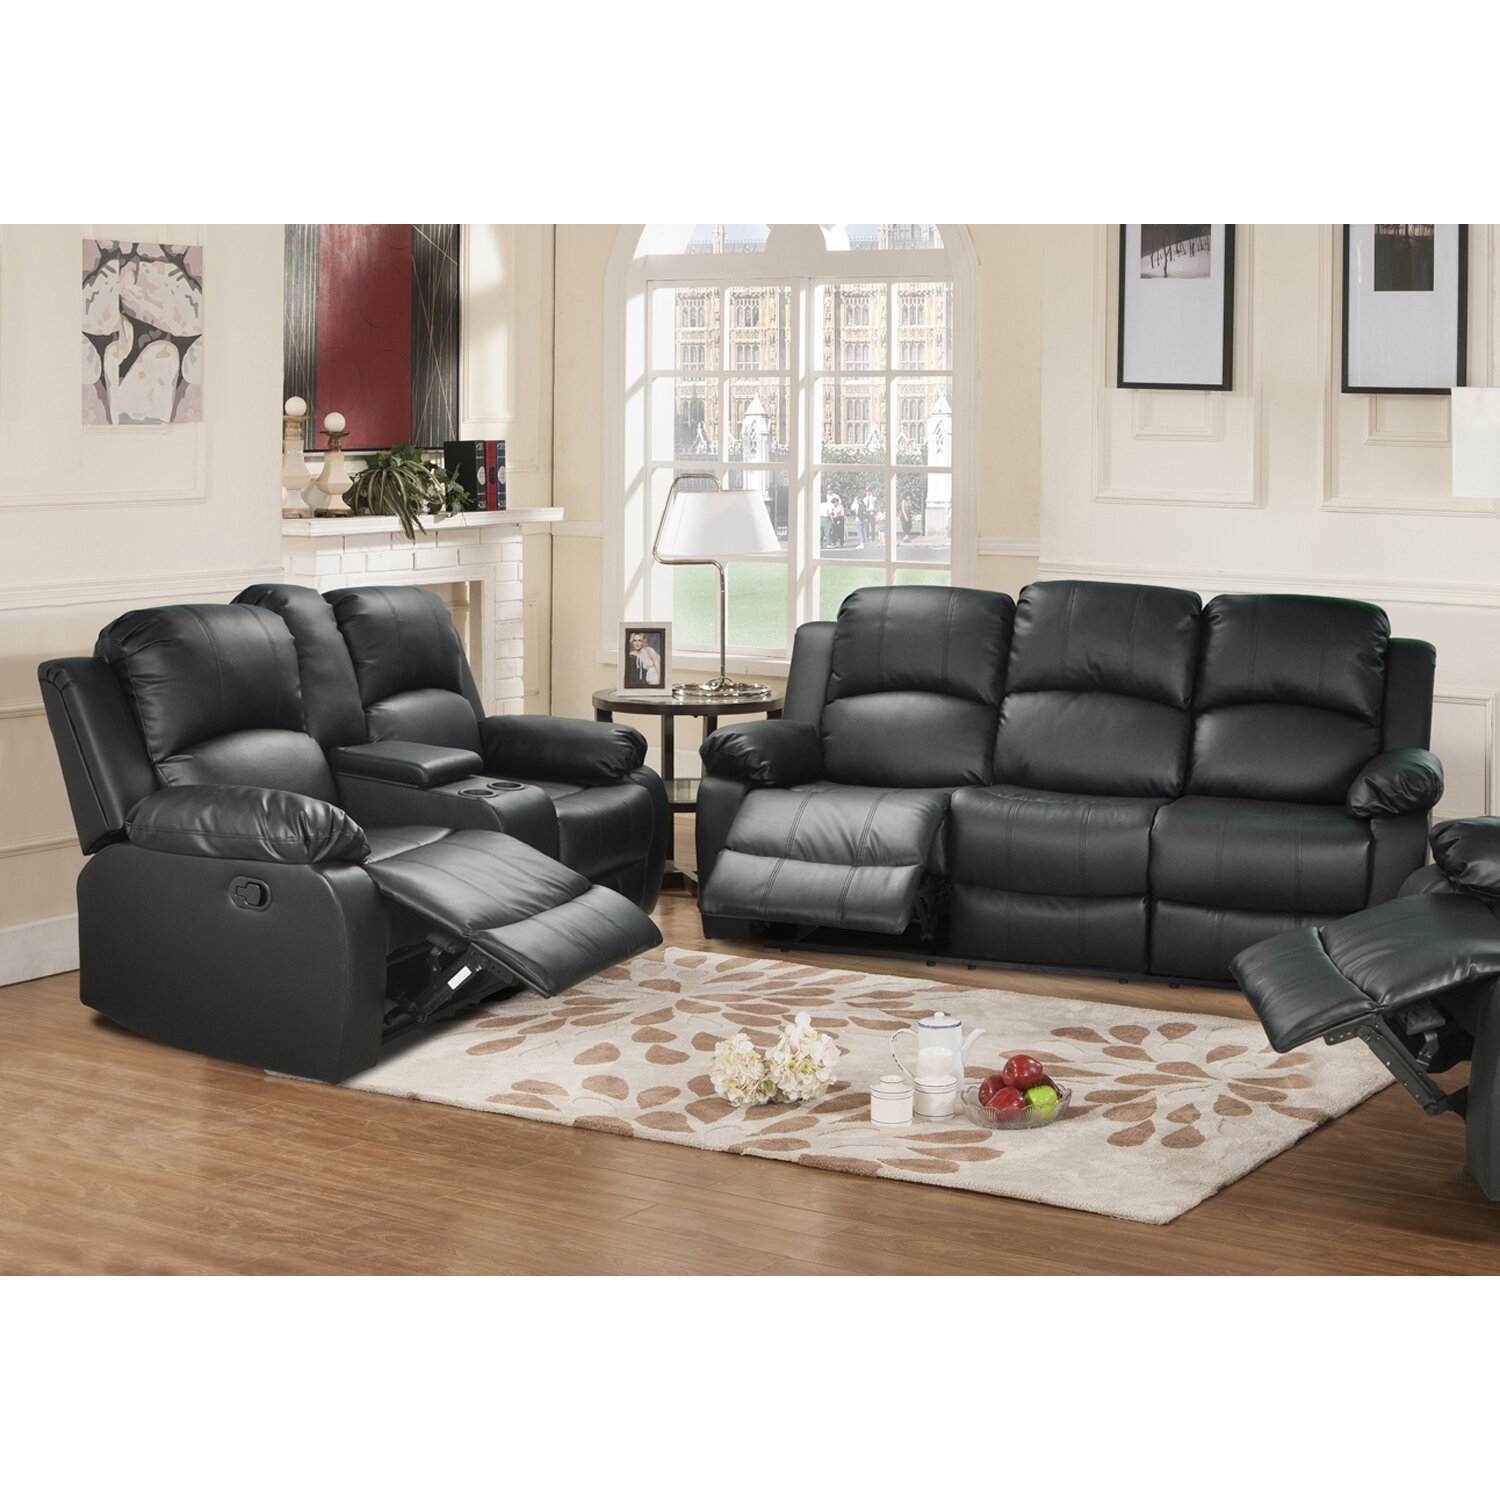 Leather reclining living room sets modern house Reclining living room furniture